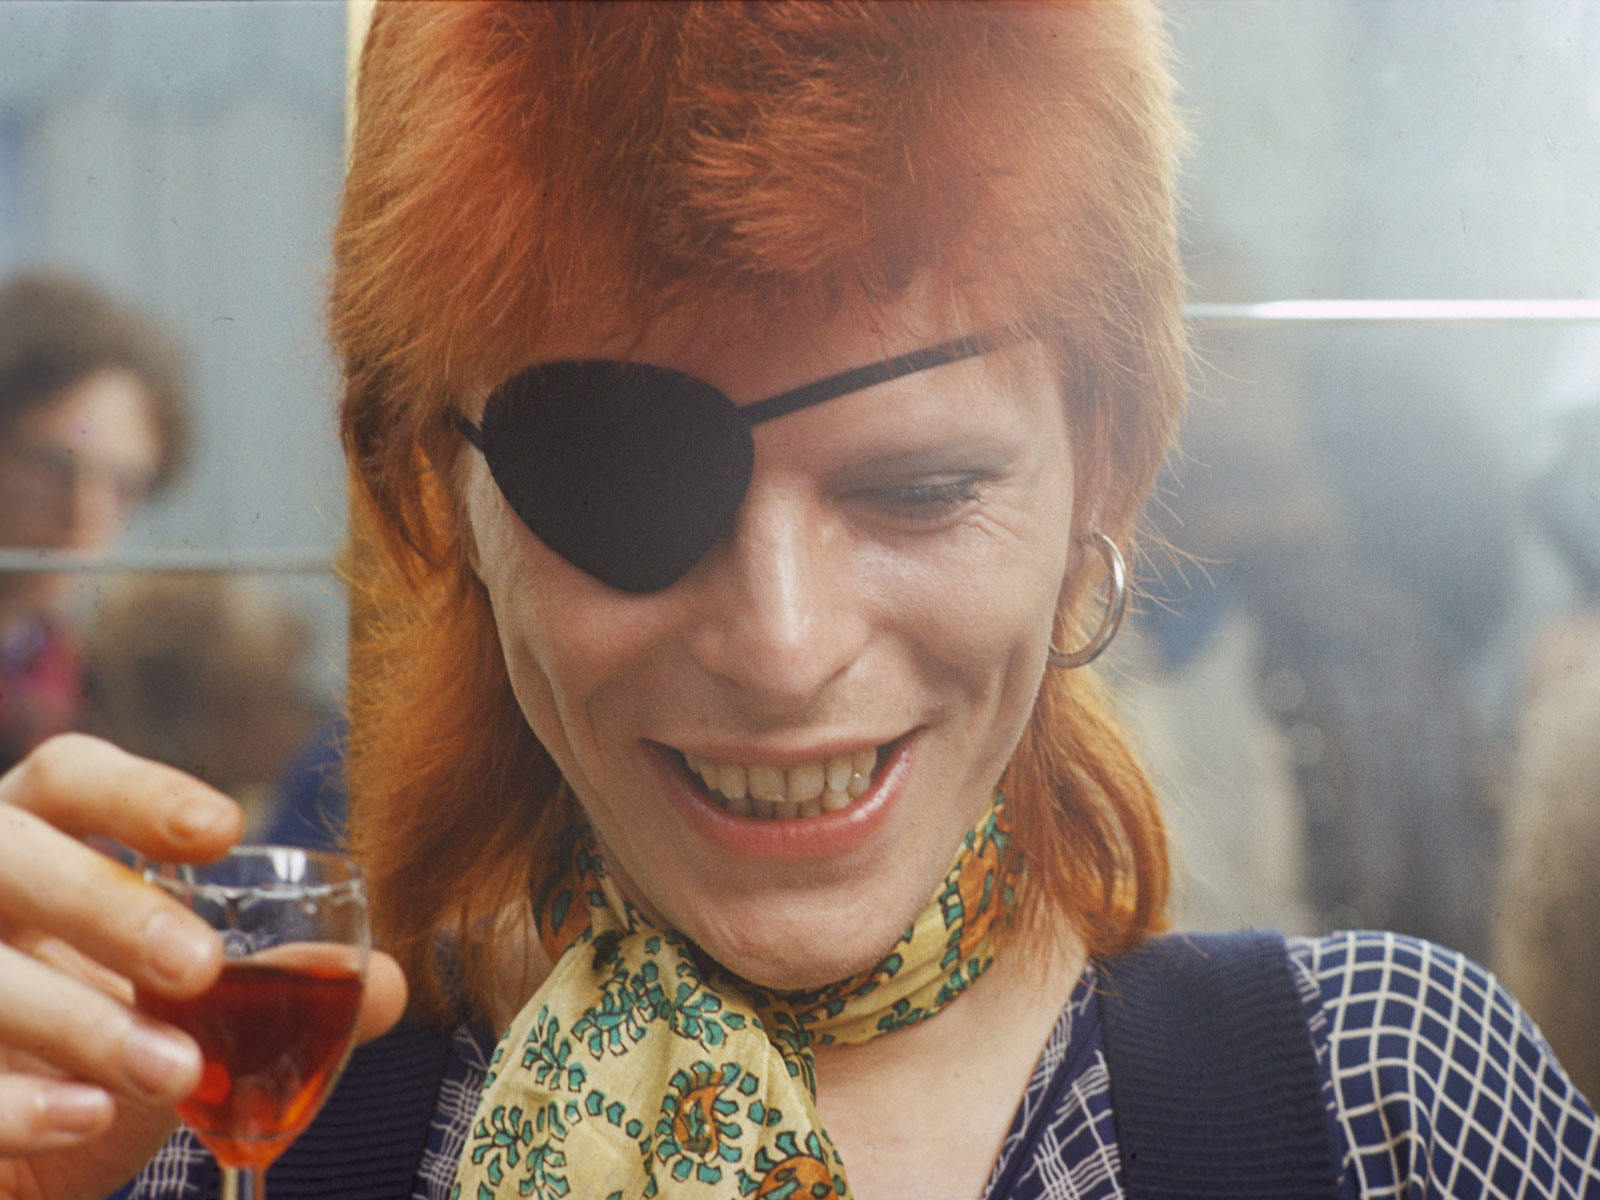 A Ziggy Stardust Bar Lands in London This Fall